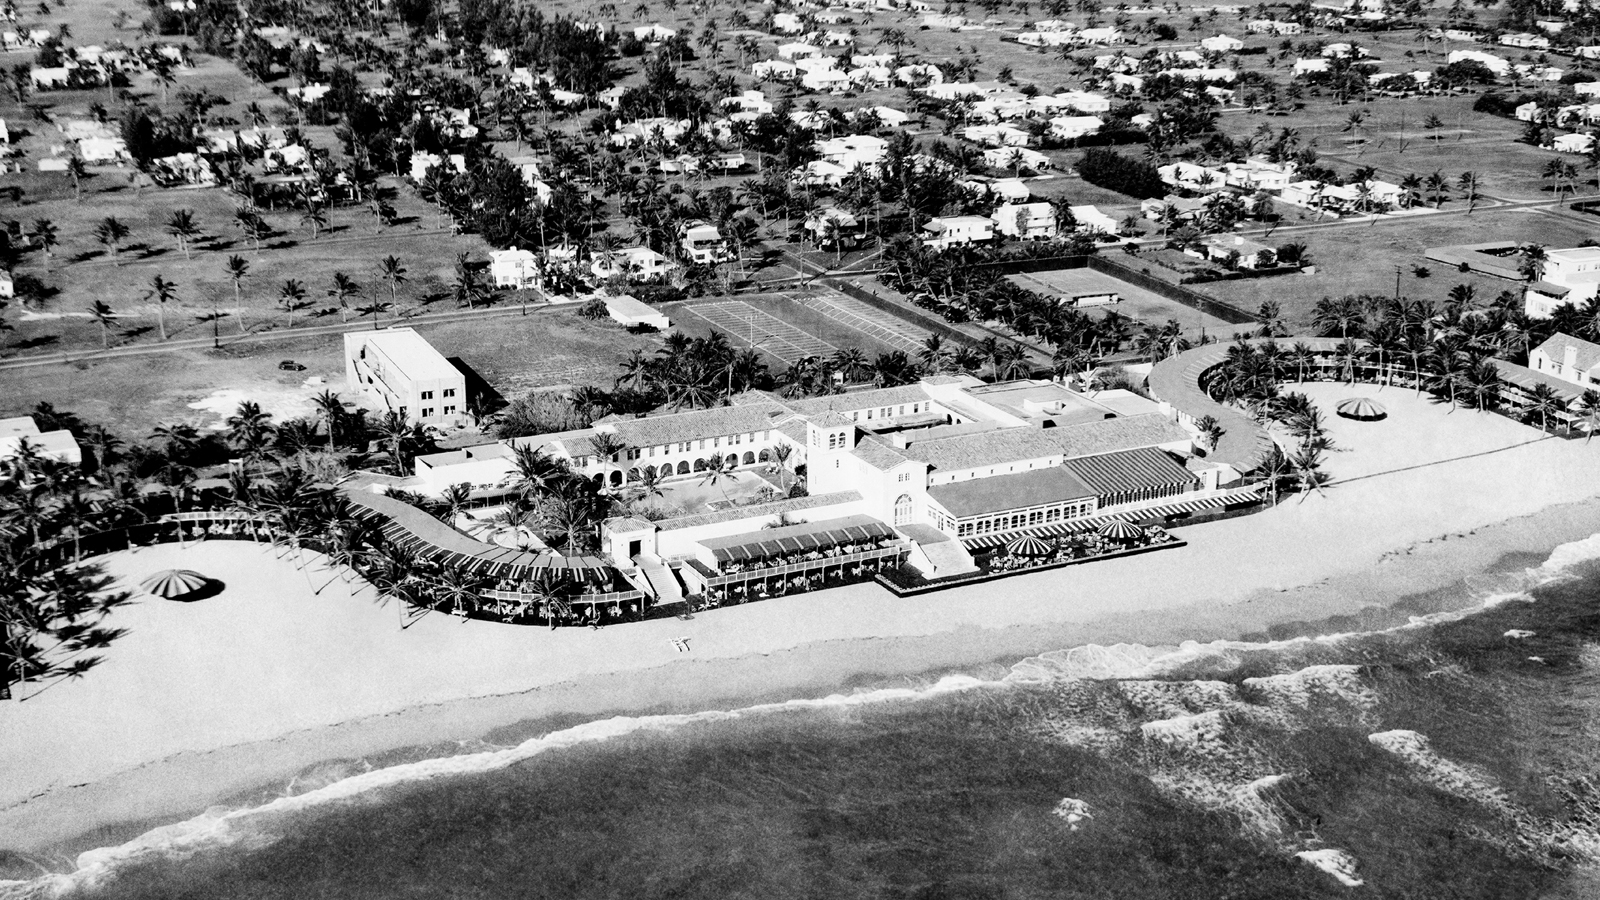 History Of The Legendary Surf Club At Surfside Four Seasons Hotel